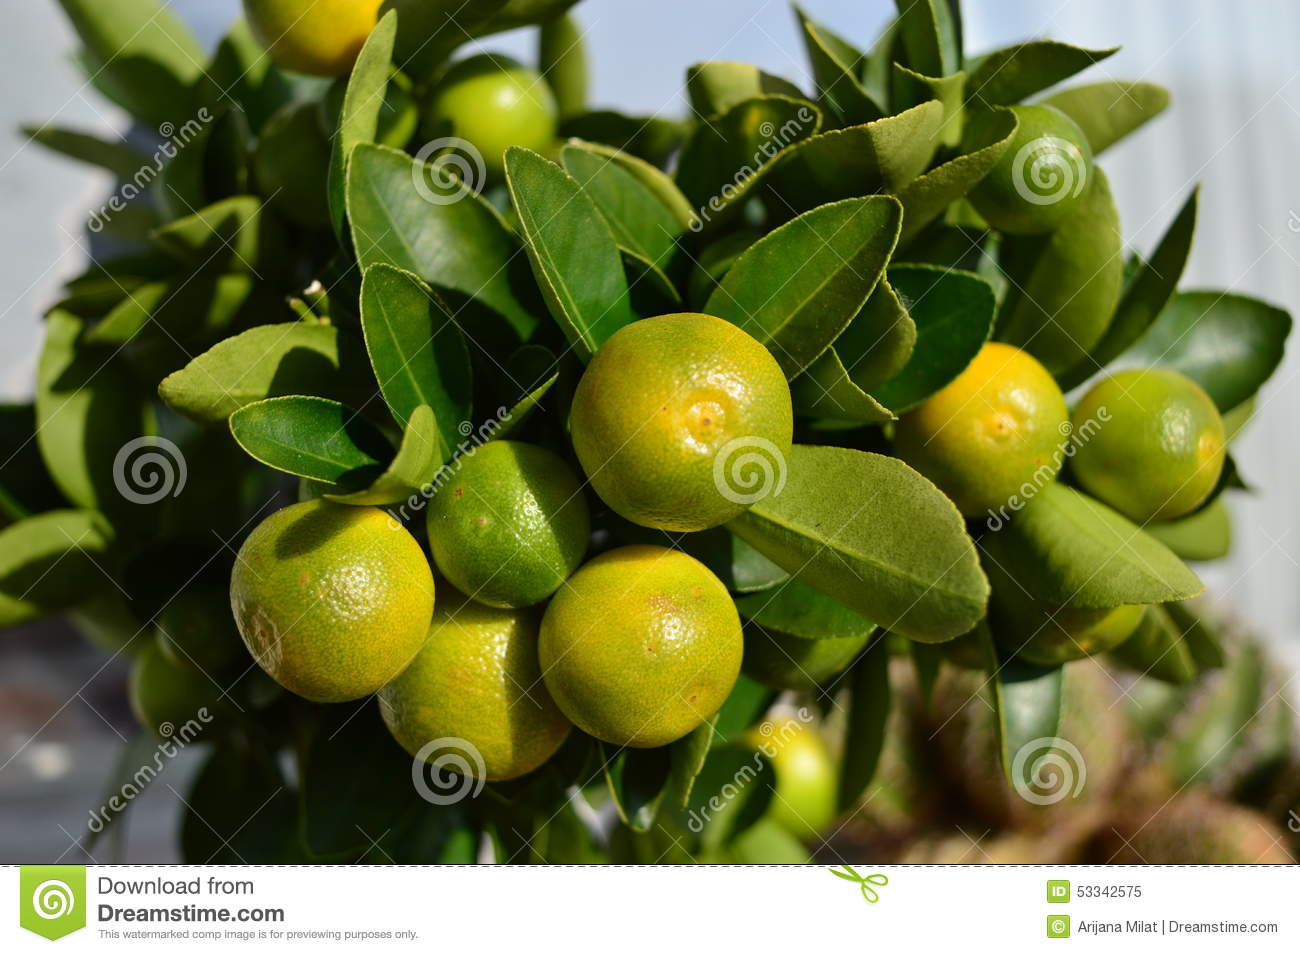 citrus calamondin stock image image of orange ornamental 53342575. Black Bedroom Furniture Sets. Home Design Ideas